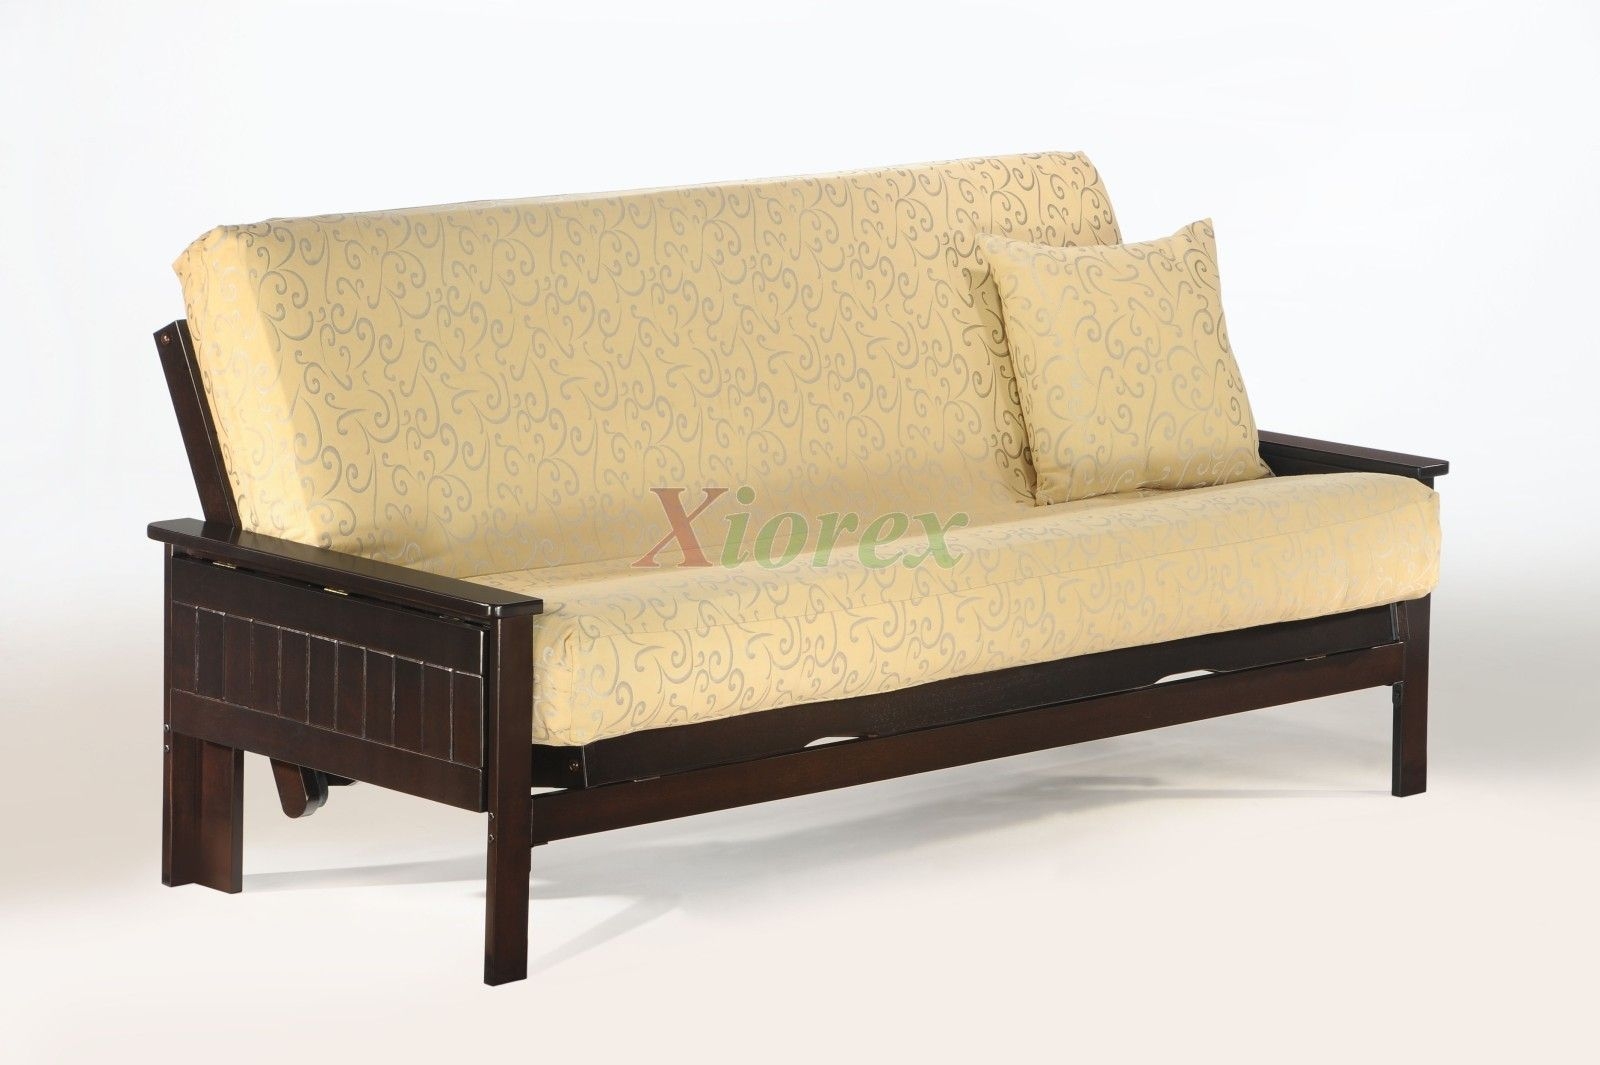 Seattle Futon by Night and Day Dark Chocolate Futon Convertible   Xiorex Seattle Futon by Night and Day is solid wood convertible futon furniture. The Seattle Futon comes with a classic tray-arm on each side of the futon convertible and is available in variety of finishes.  Check futon mattresses and futon size shopping guide. https://www.xiorex.com/night-and-day-seattle-futon-convertible